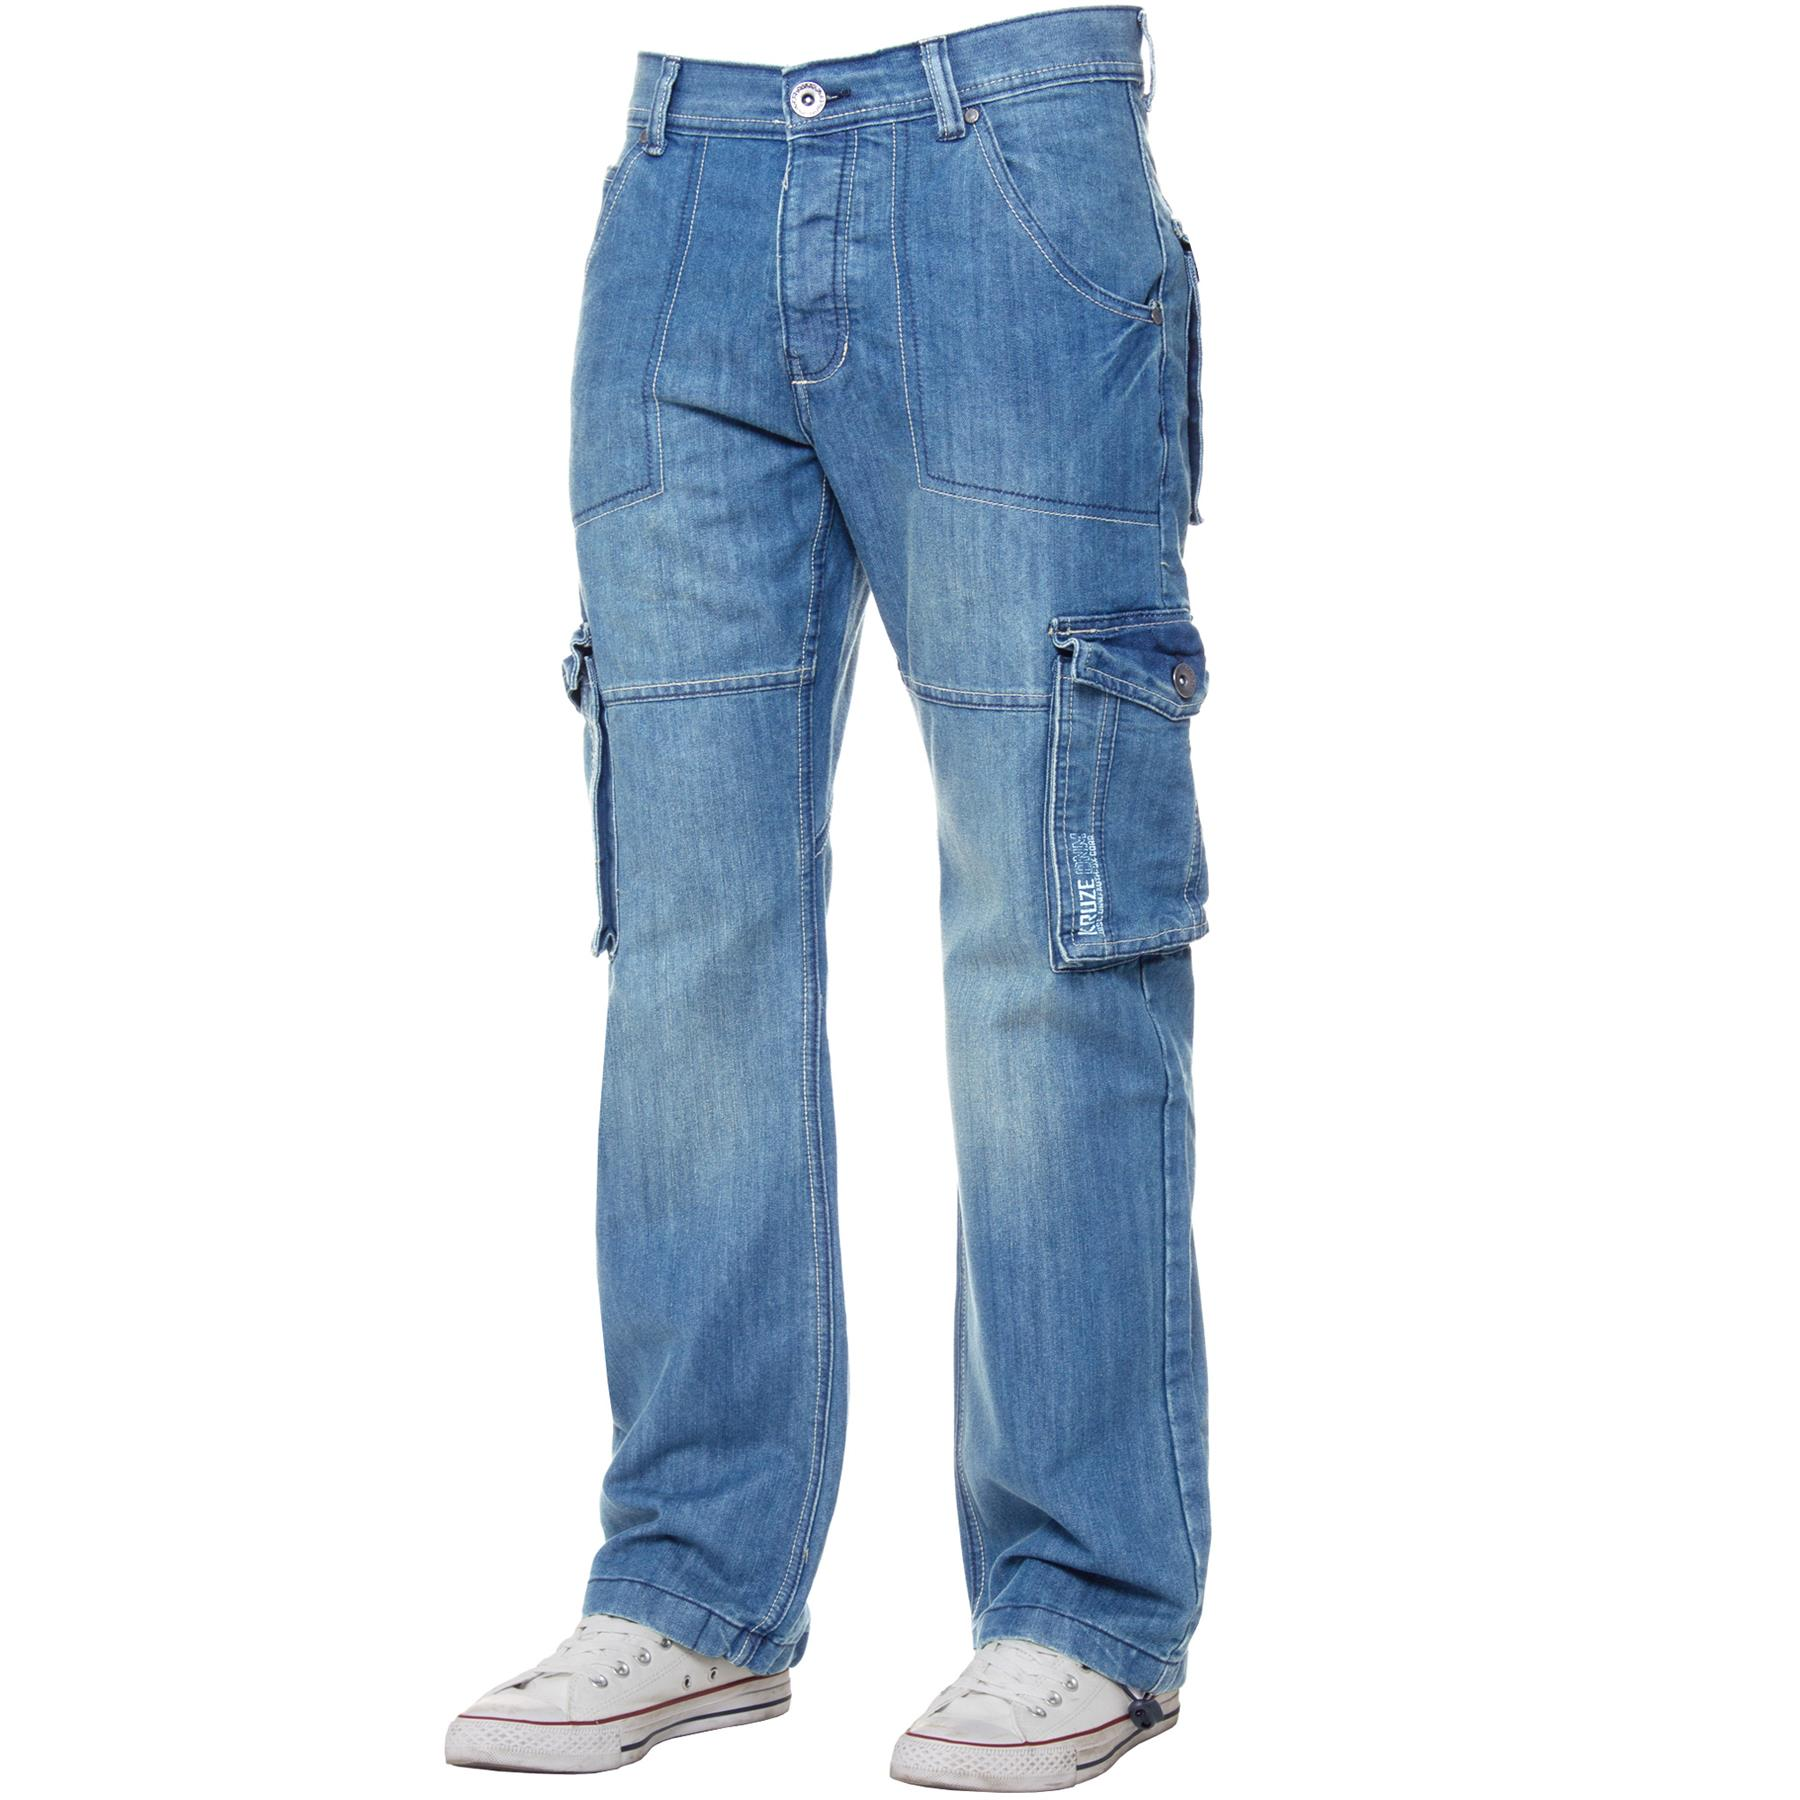 Kruze-Mens-Cargo-Combat-Jeans-Casual-Work-Denim-Pants-Big-Tall-All-Waist-Sizes thumbnail 40